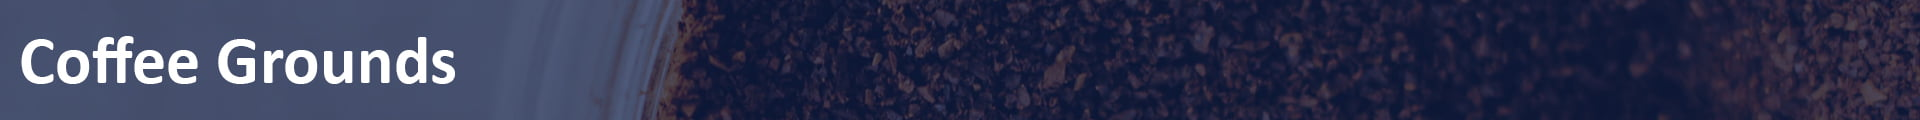 Coffee Grounds banner 1